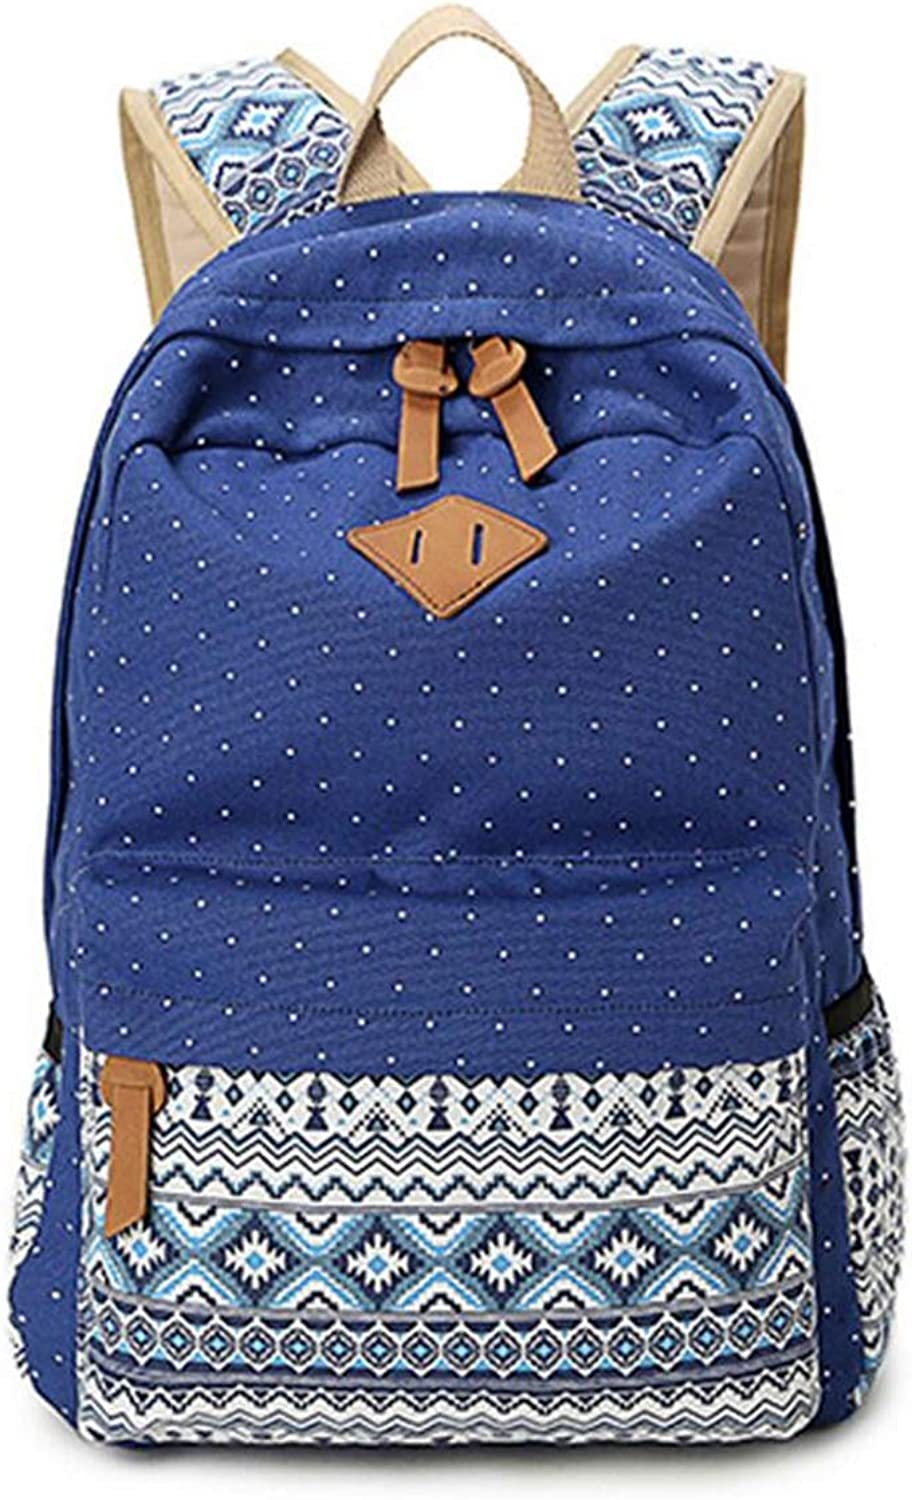 Backpack Korean Version Women's Travel Backpack Canvas Bag CrossBorder Student School Bag Harajuku Style Celebrity Style blueee Canvas 20L 28  12  42cm